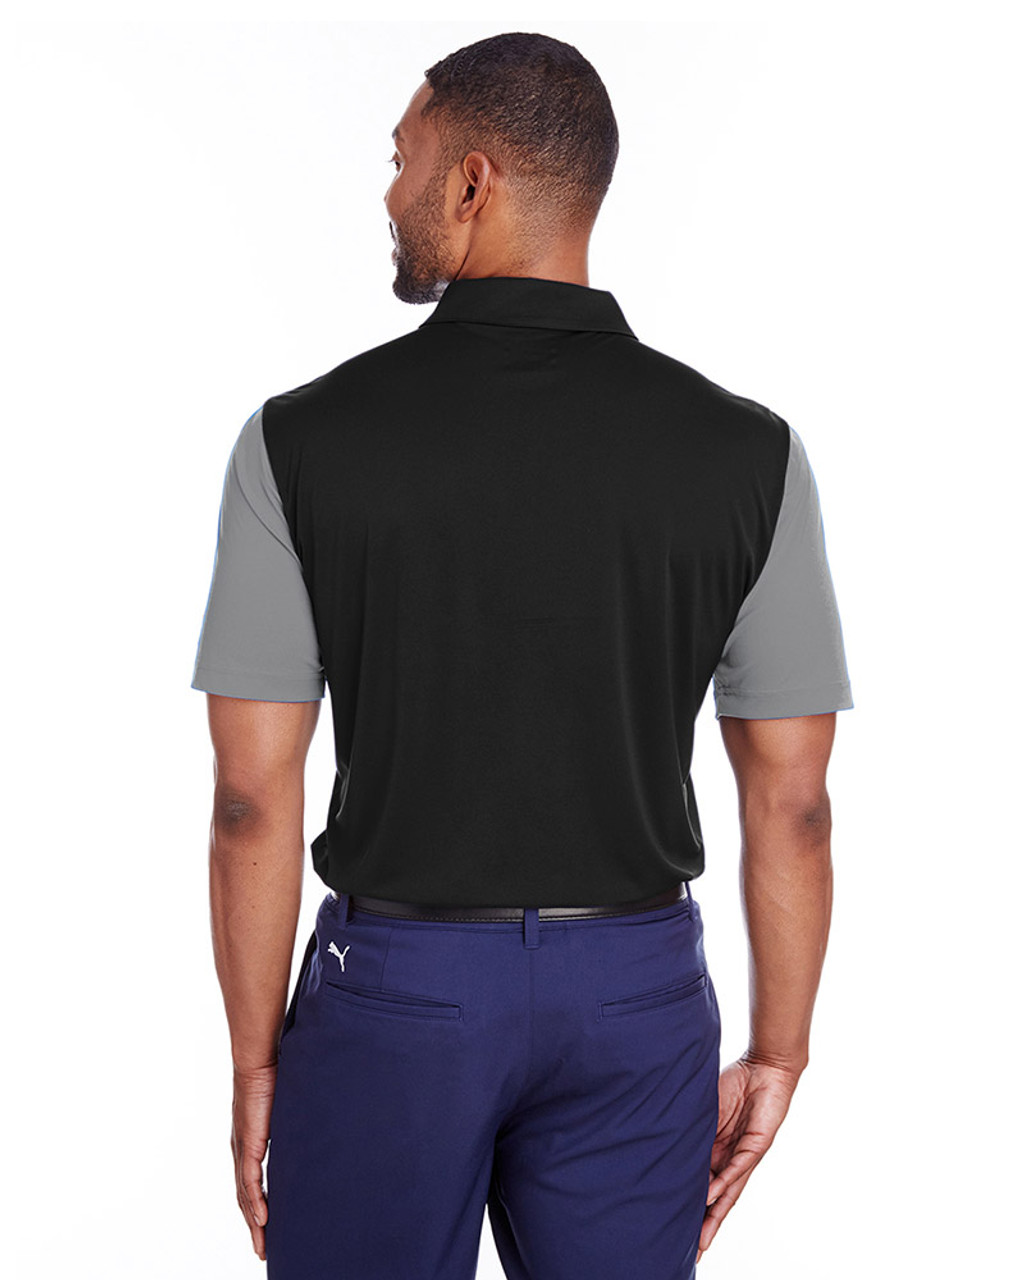 Quiet Shade/Puma Black - back, 596805 Puma Golf Men's Bonded Colorblock Polo | Blankclothing.ca